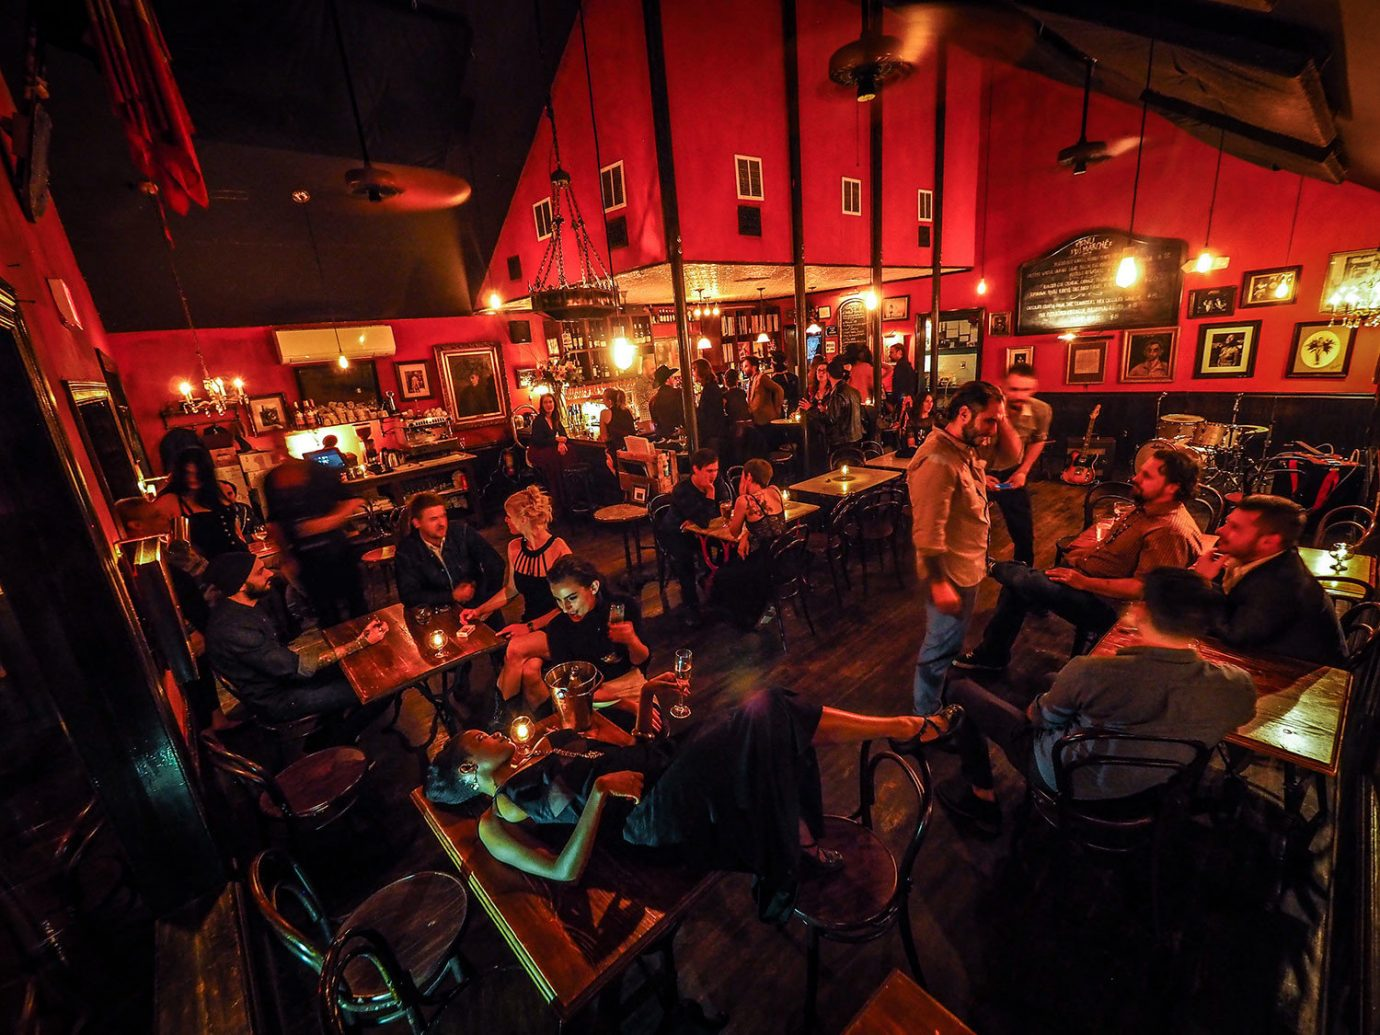 person ceiling people crowd Bar night pub musical instrument accessory restaurant group jazz club tavern recreation several